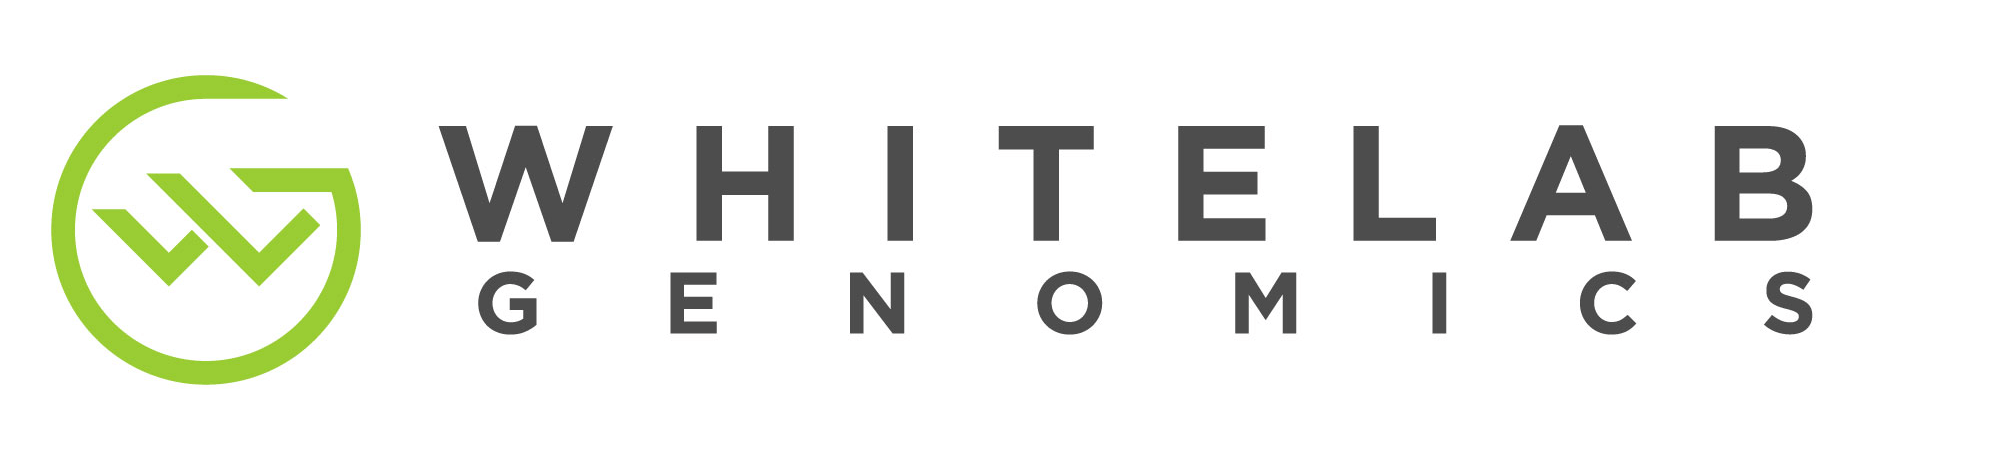 WhiteLab Genomics